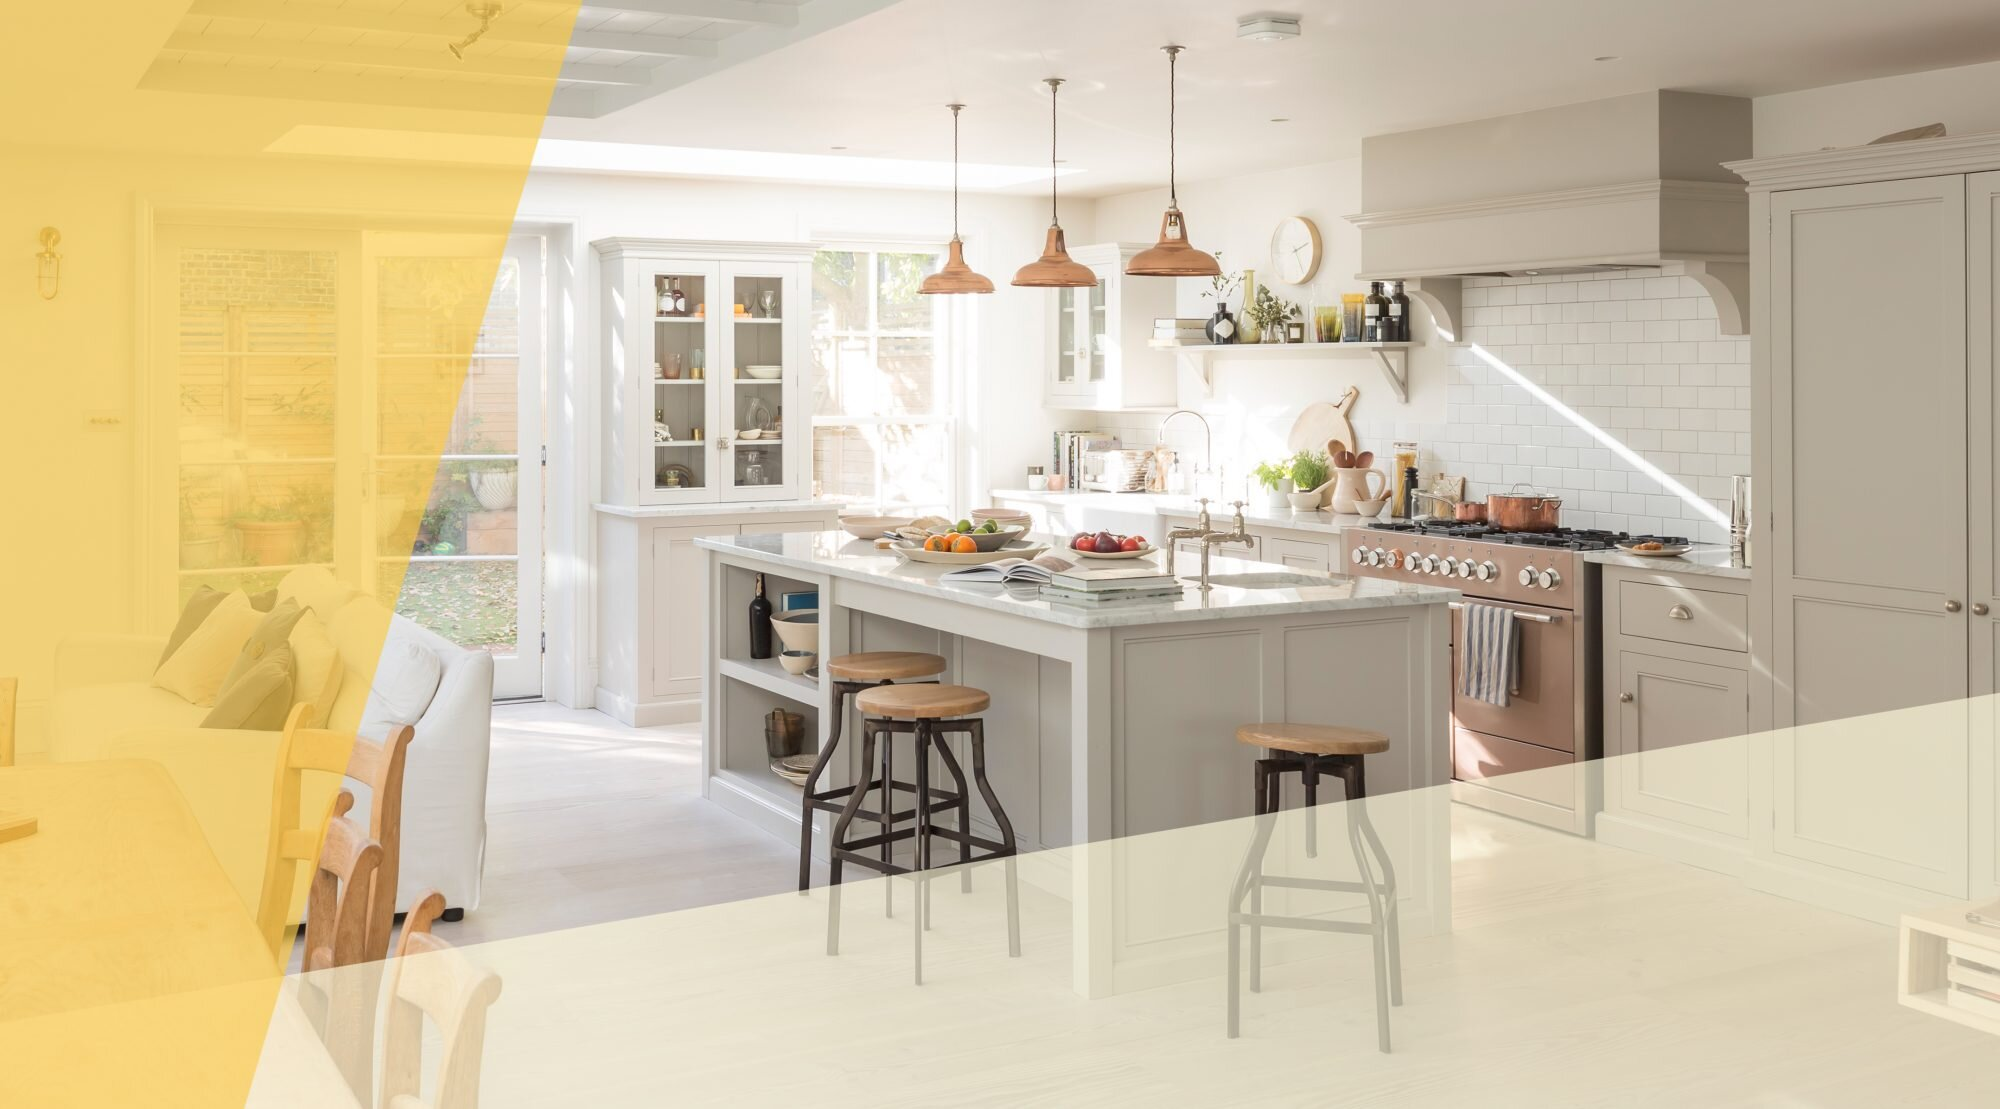 7 timeless kitchen trends that will never go out of style